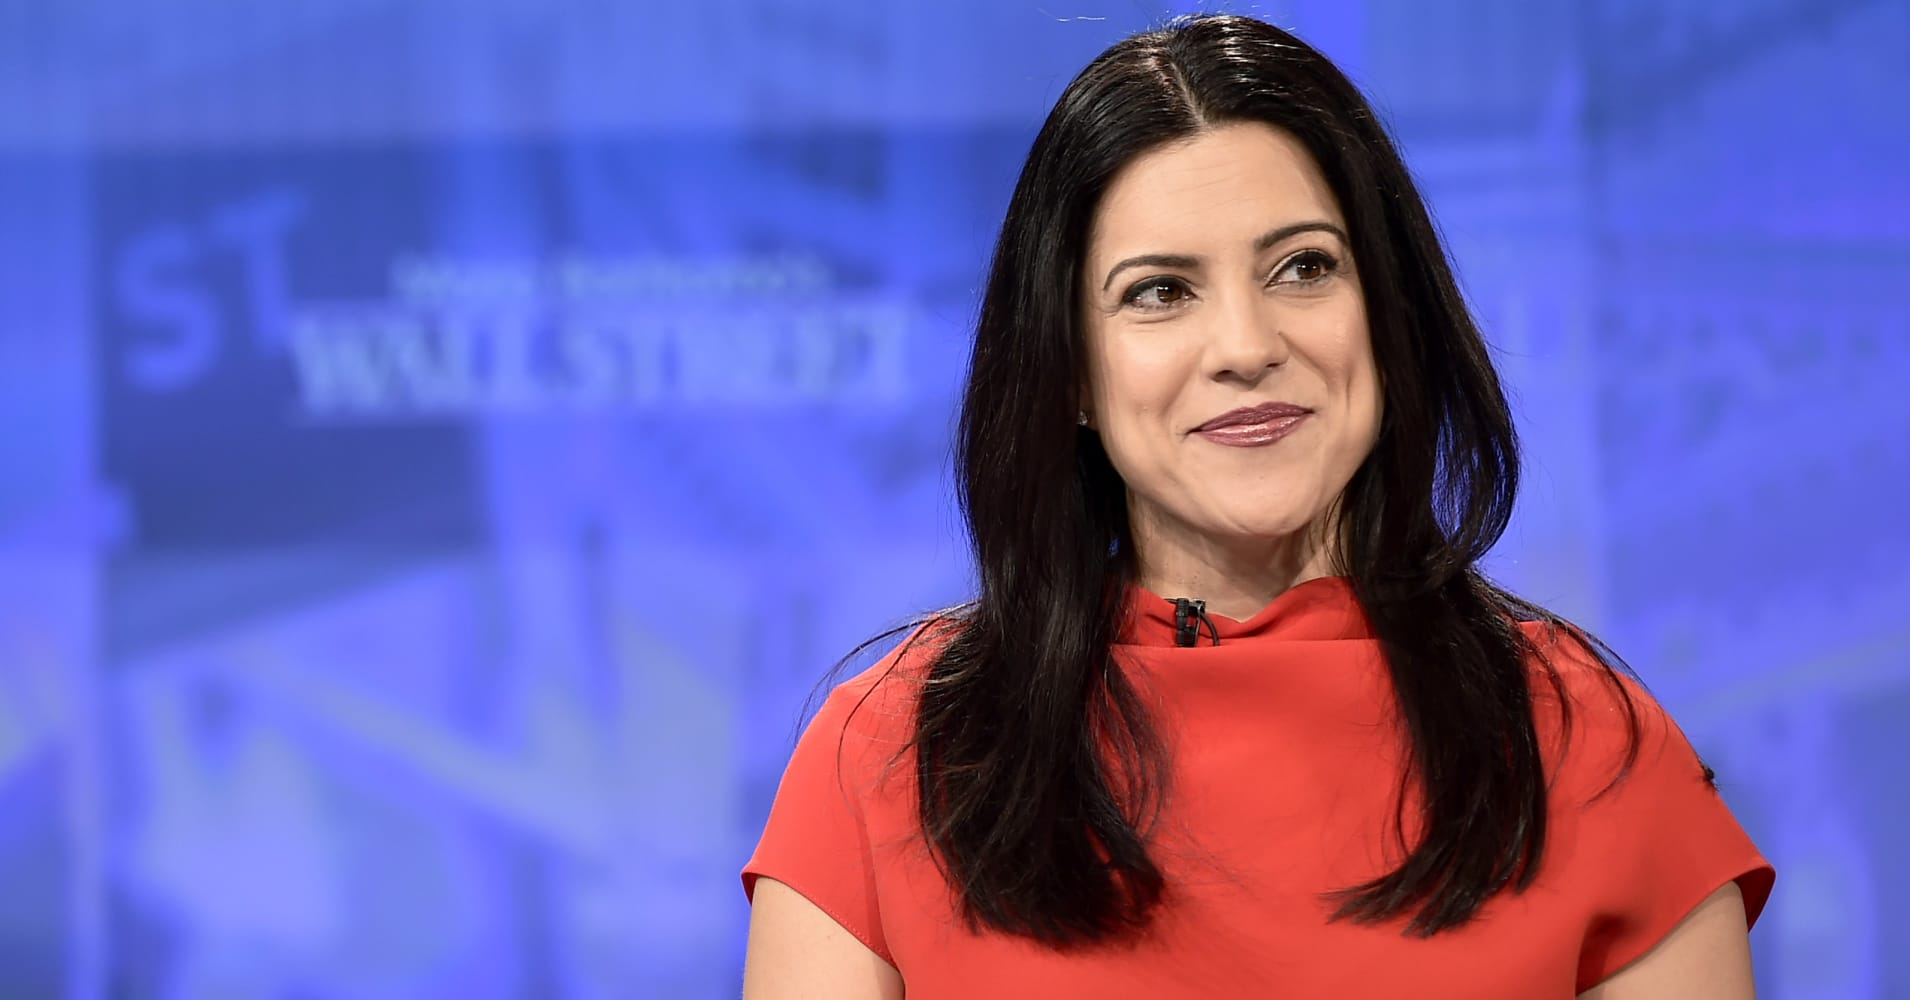 Reshma Saujani participates in an interview with Maria Bartiromo on 'Maria Bartiromo's Wall Street' at Fox Business Network Studios on Feb. 11, 2019 in New York City.